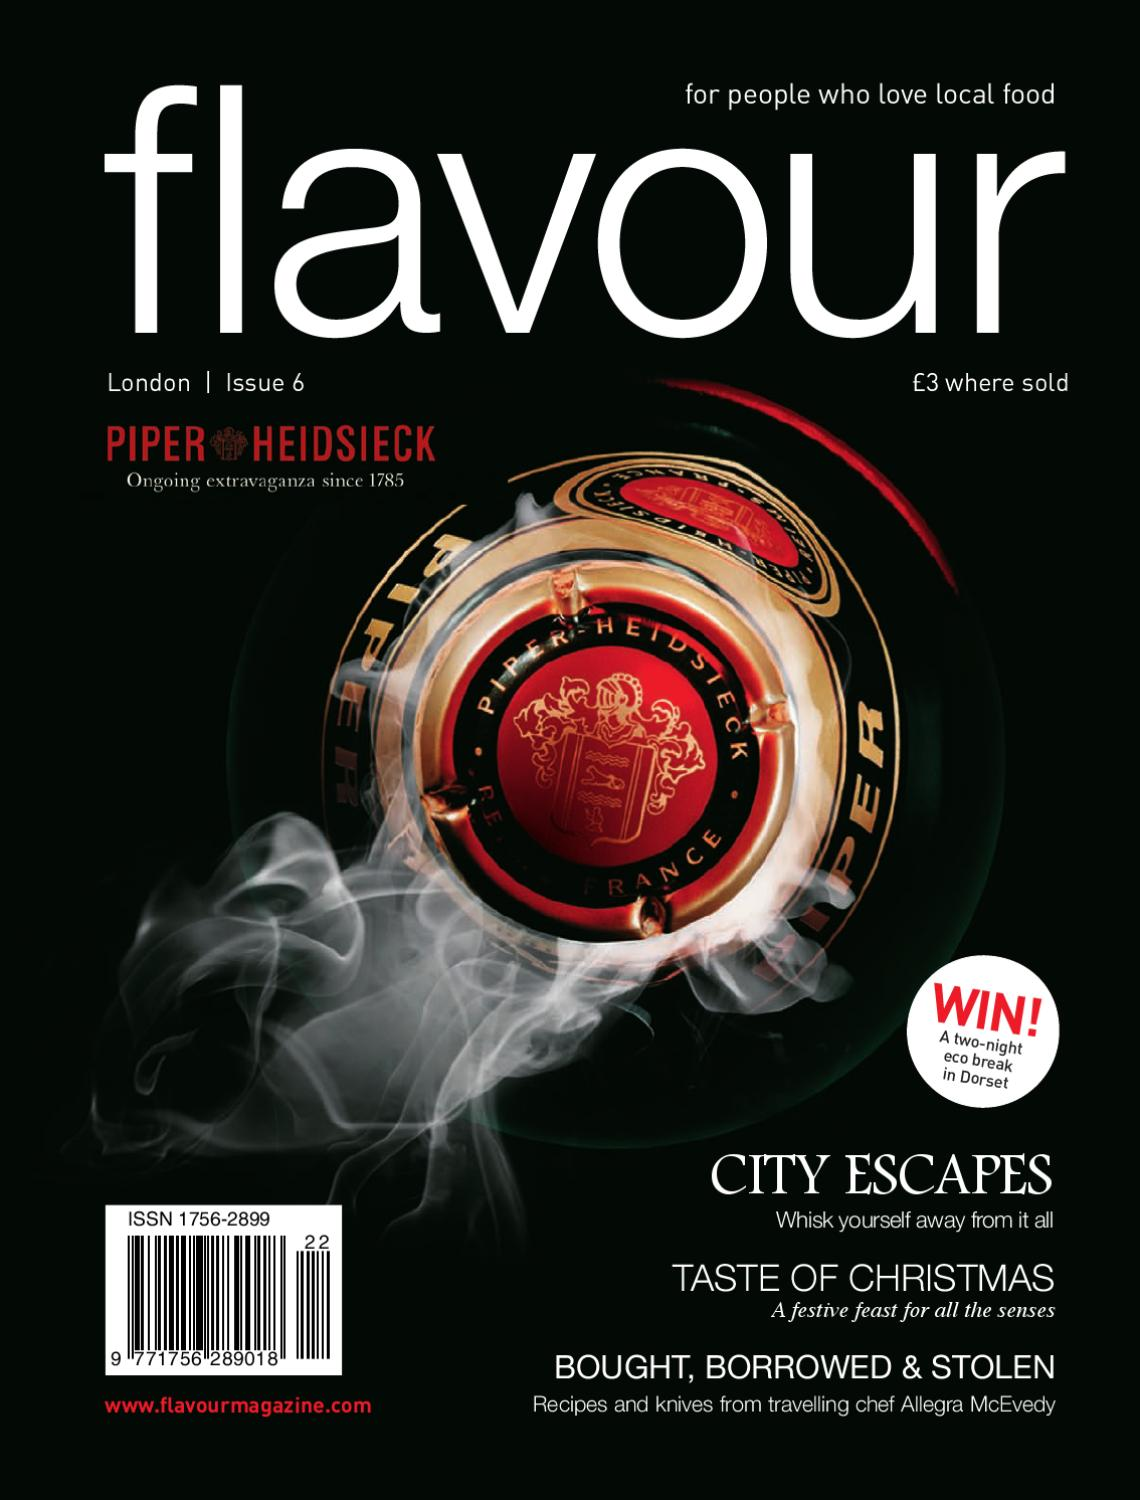 Flavour London Issue 6